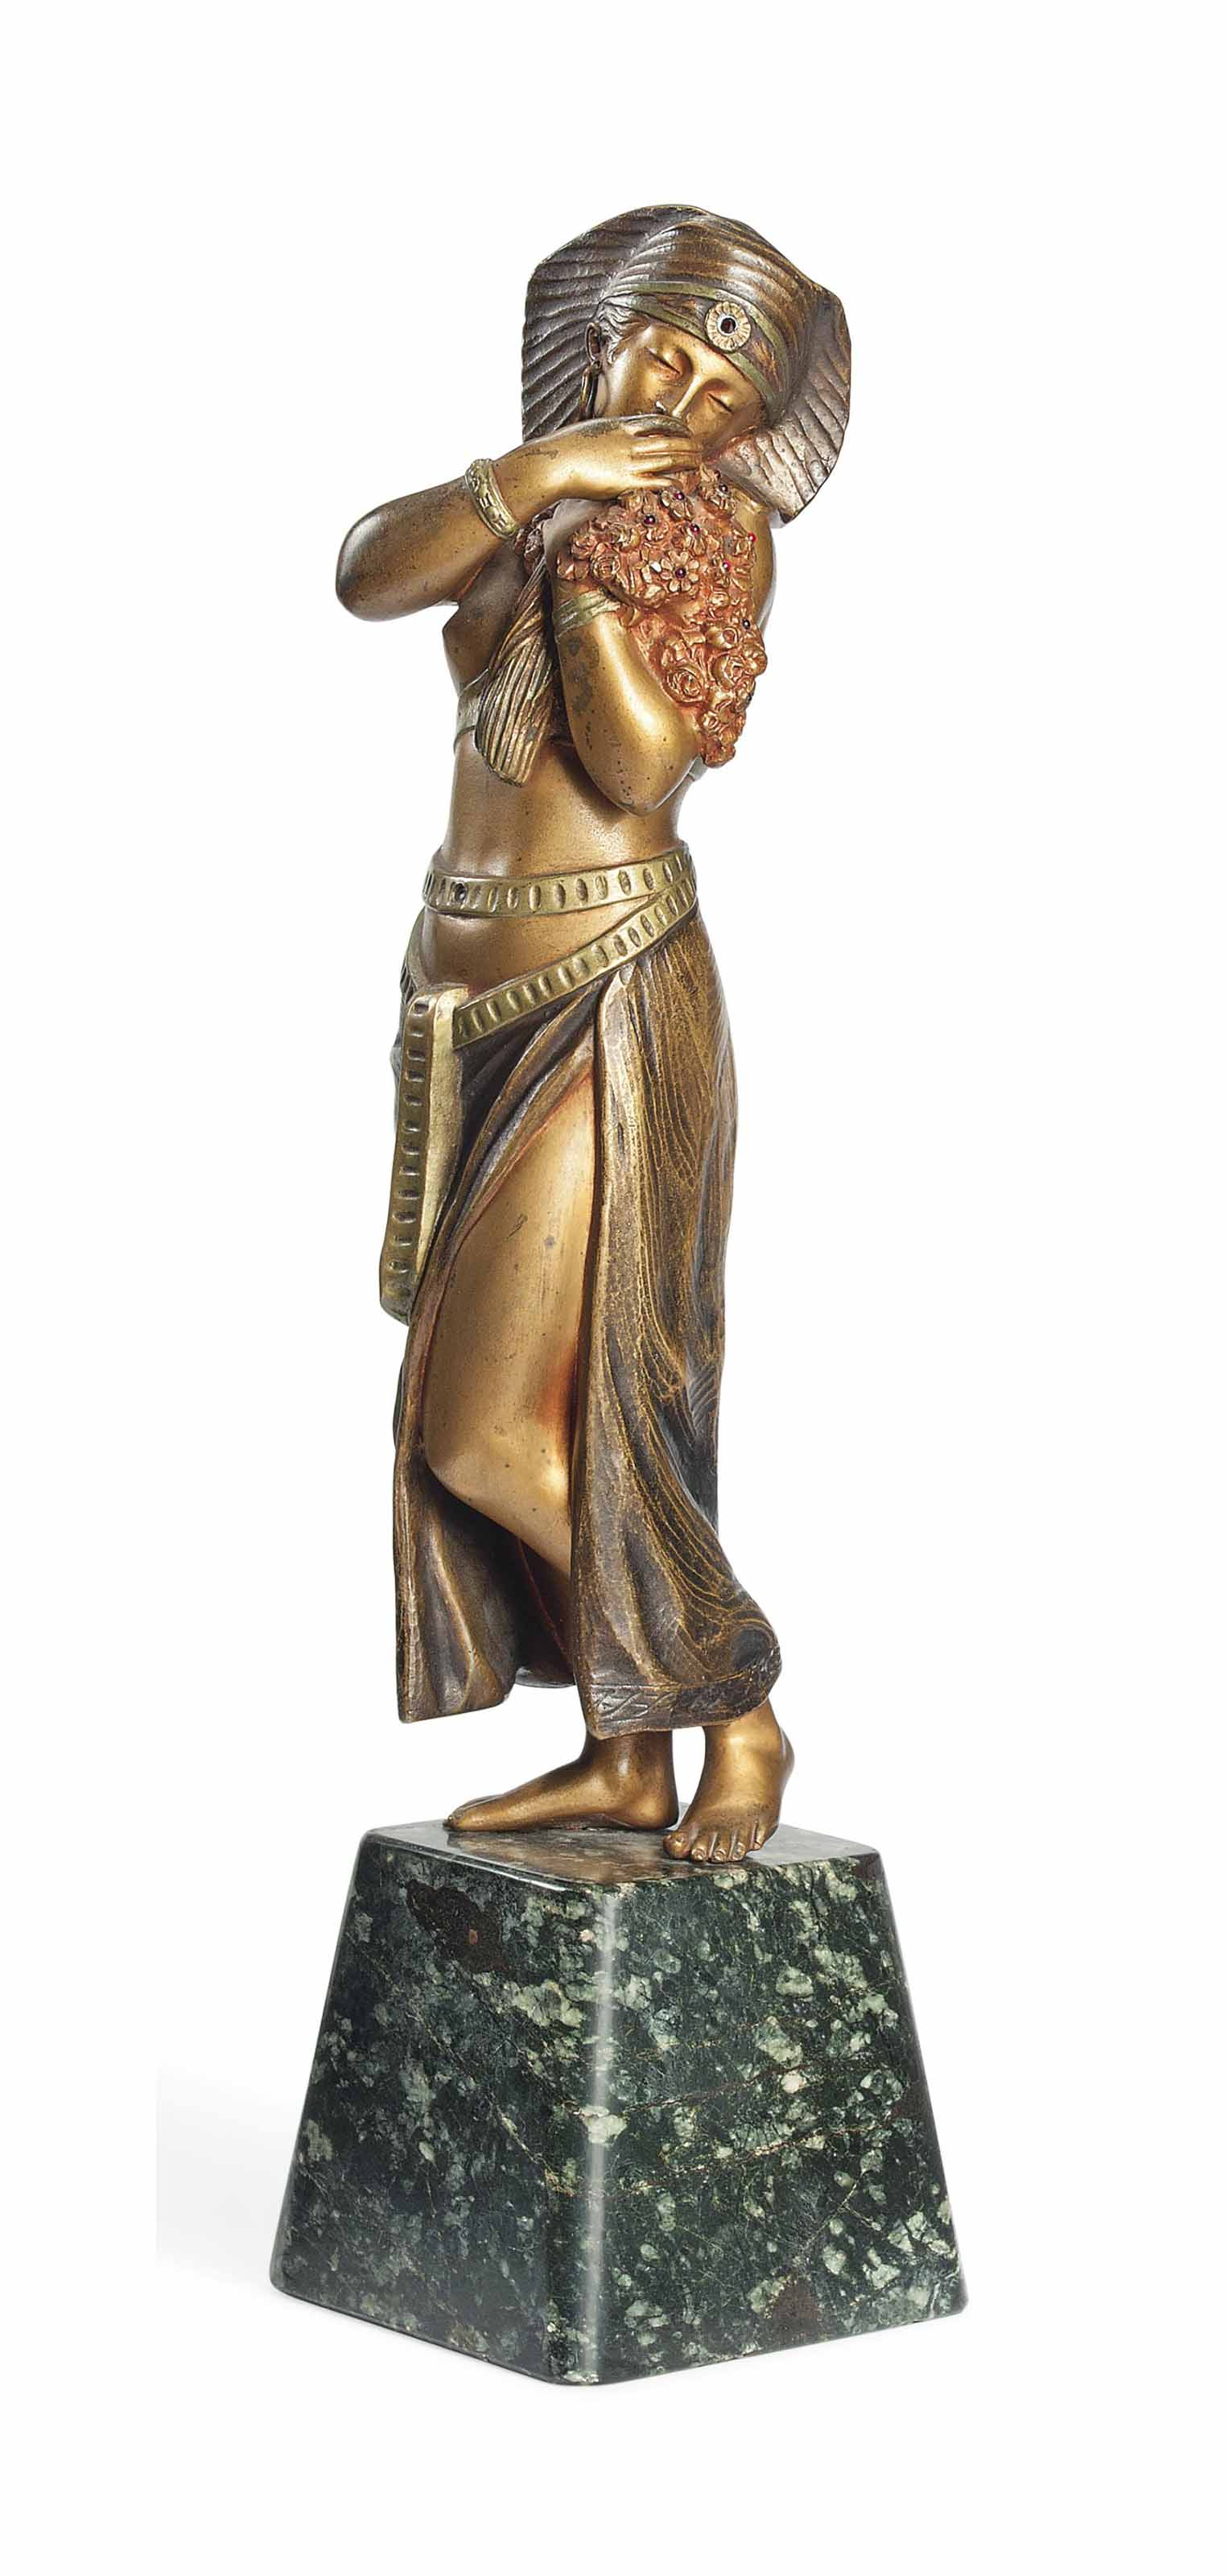 A COLD-PAINTED BRONZE BY TITZE